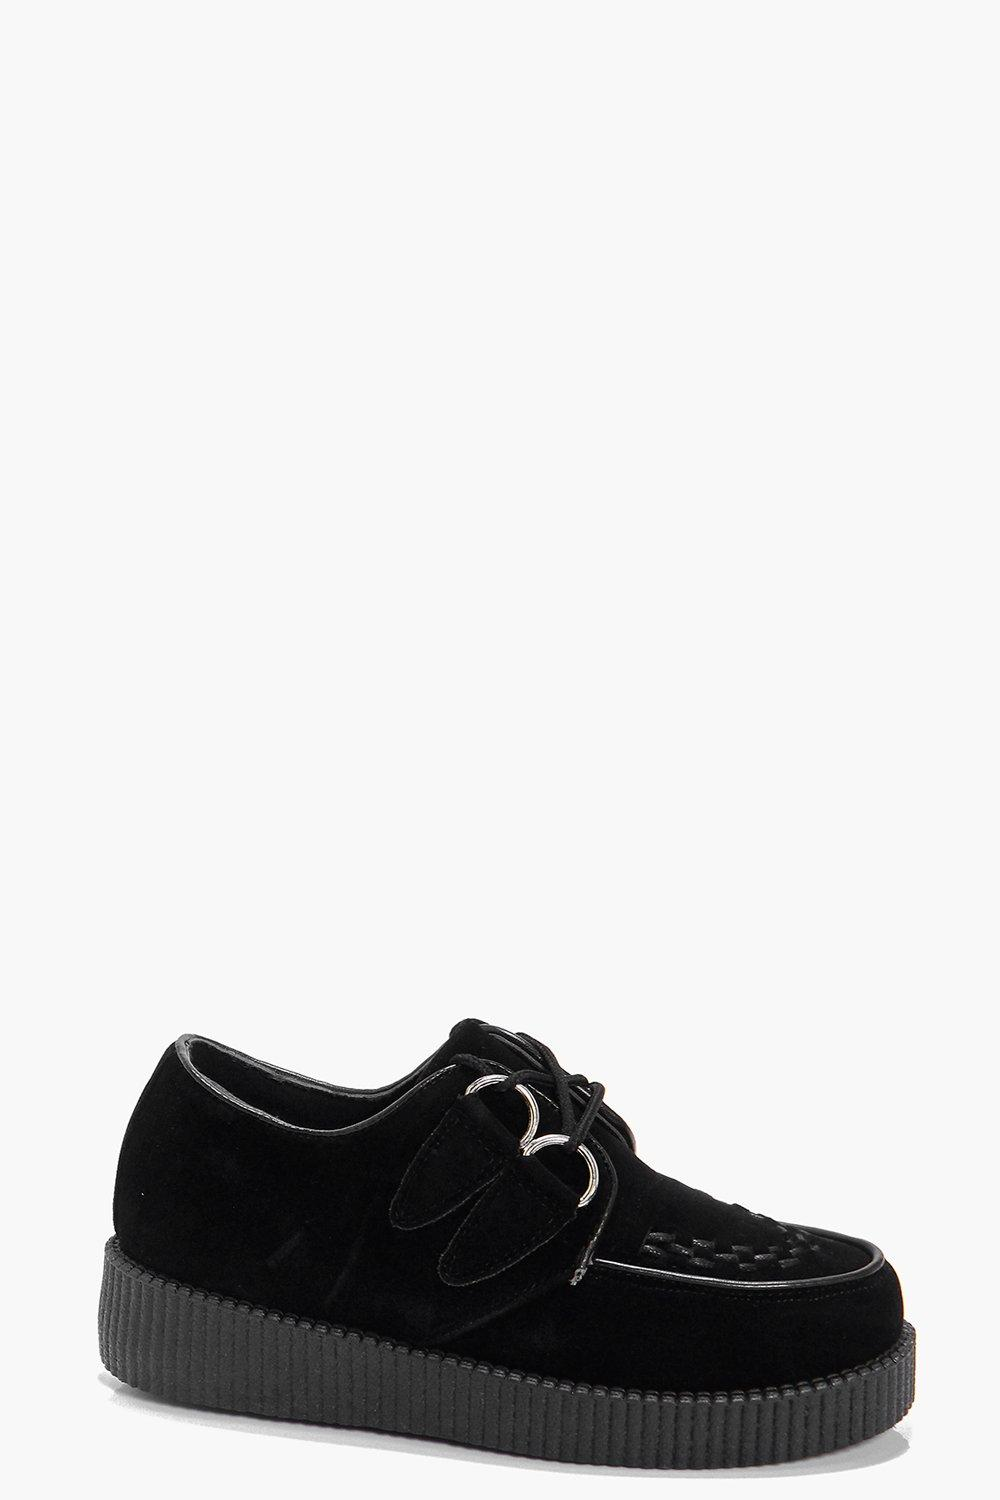 Kayla Lace Up Creeper